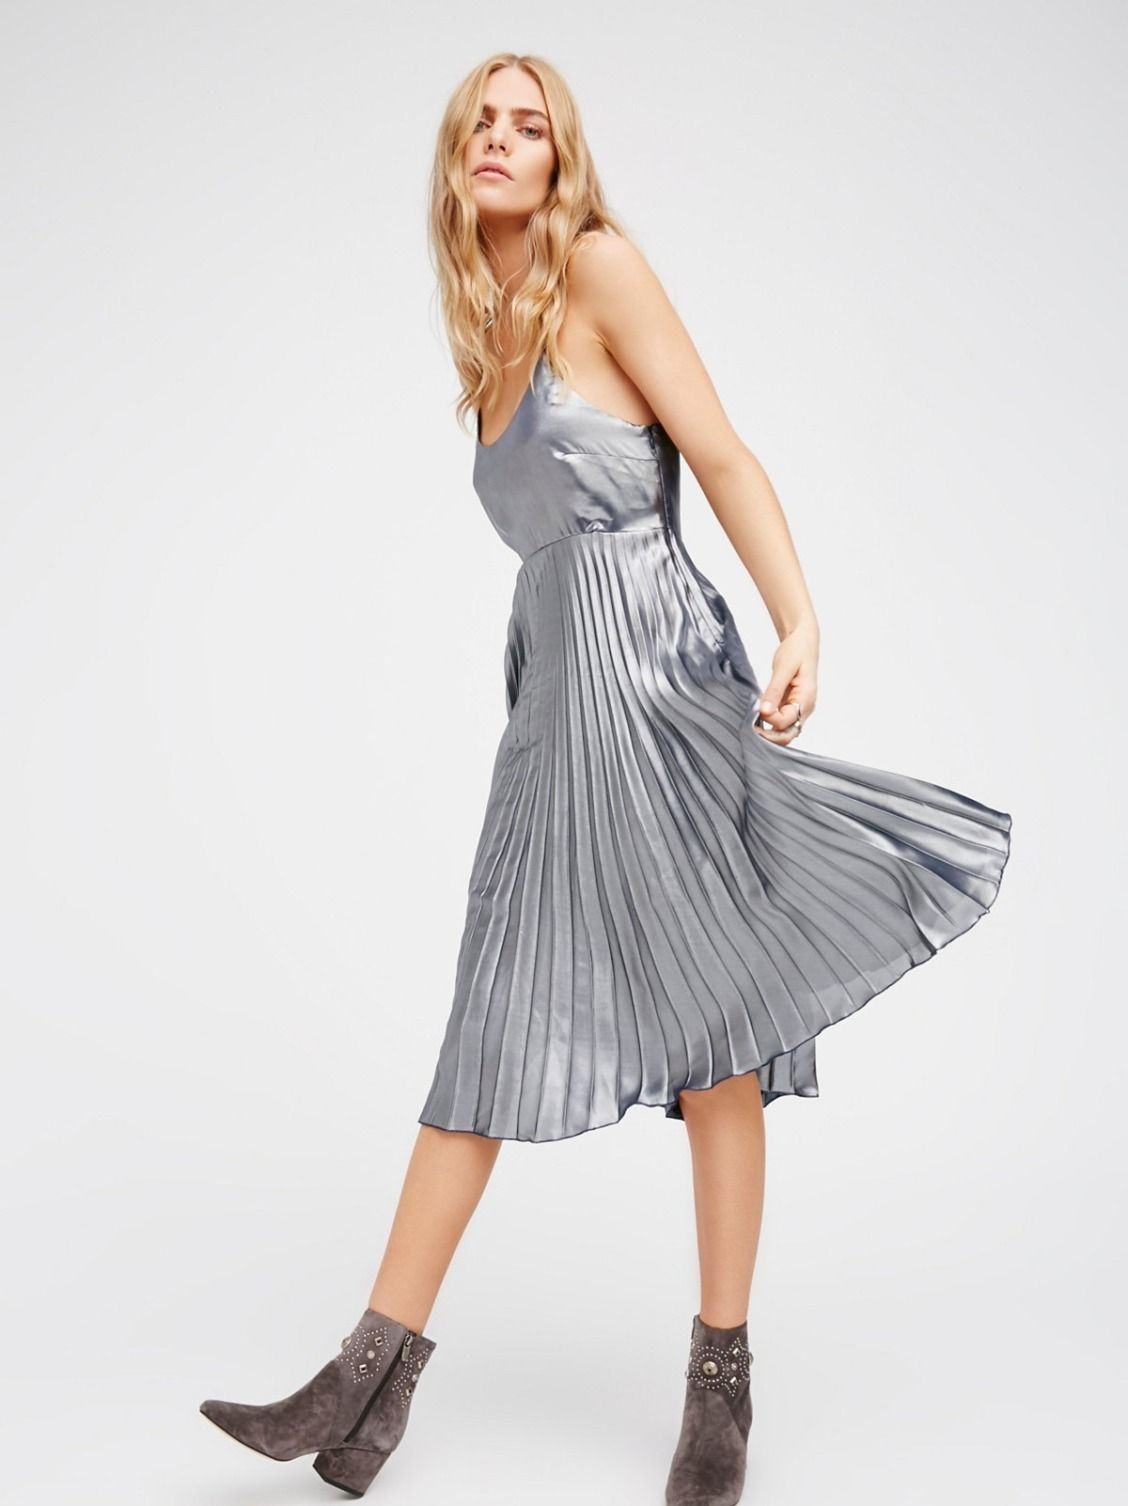 f67210205f4b Mermaid Midi Dress | Eye-catching mermaid-inspired metallic midi dress with  a pleated design. Straps feature a cute crossed detail in back.